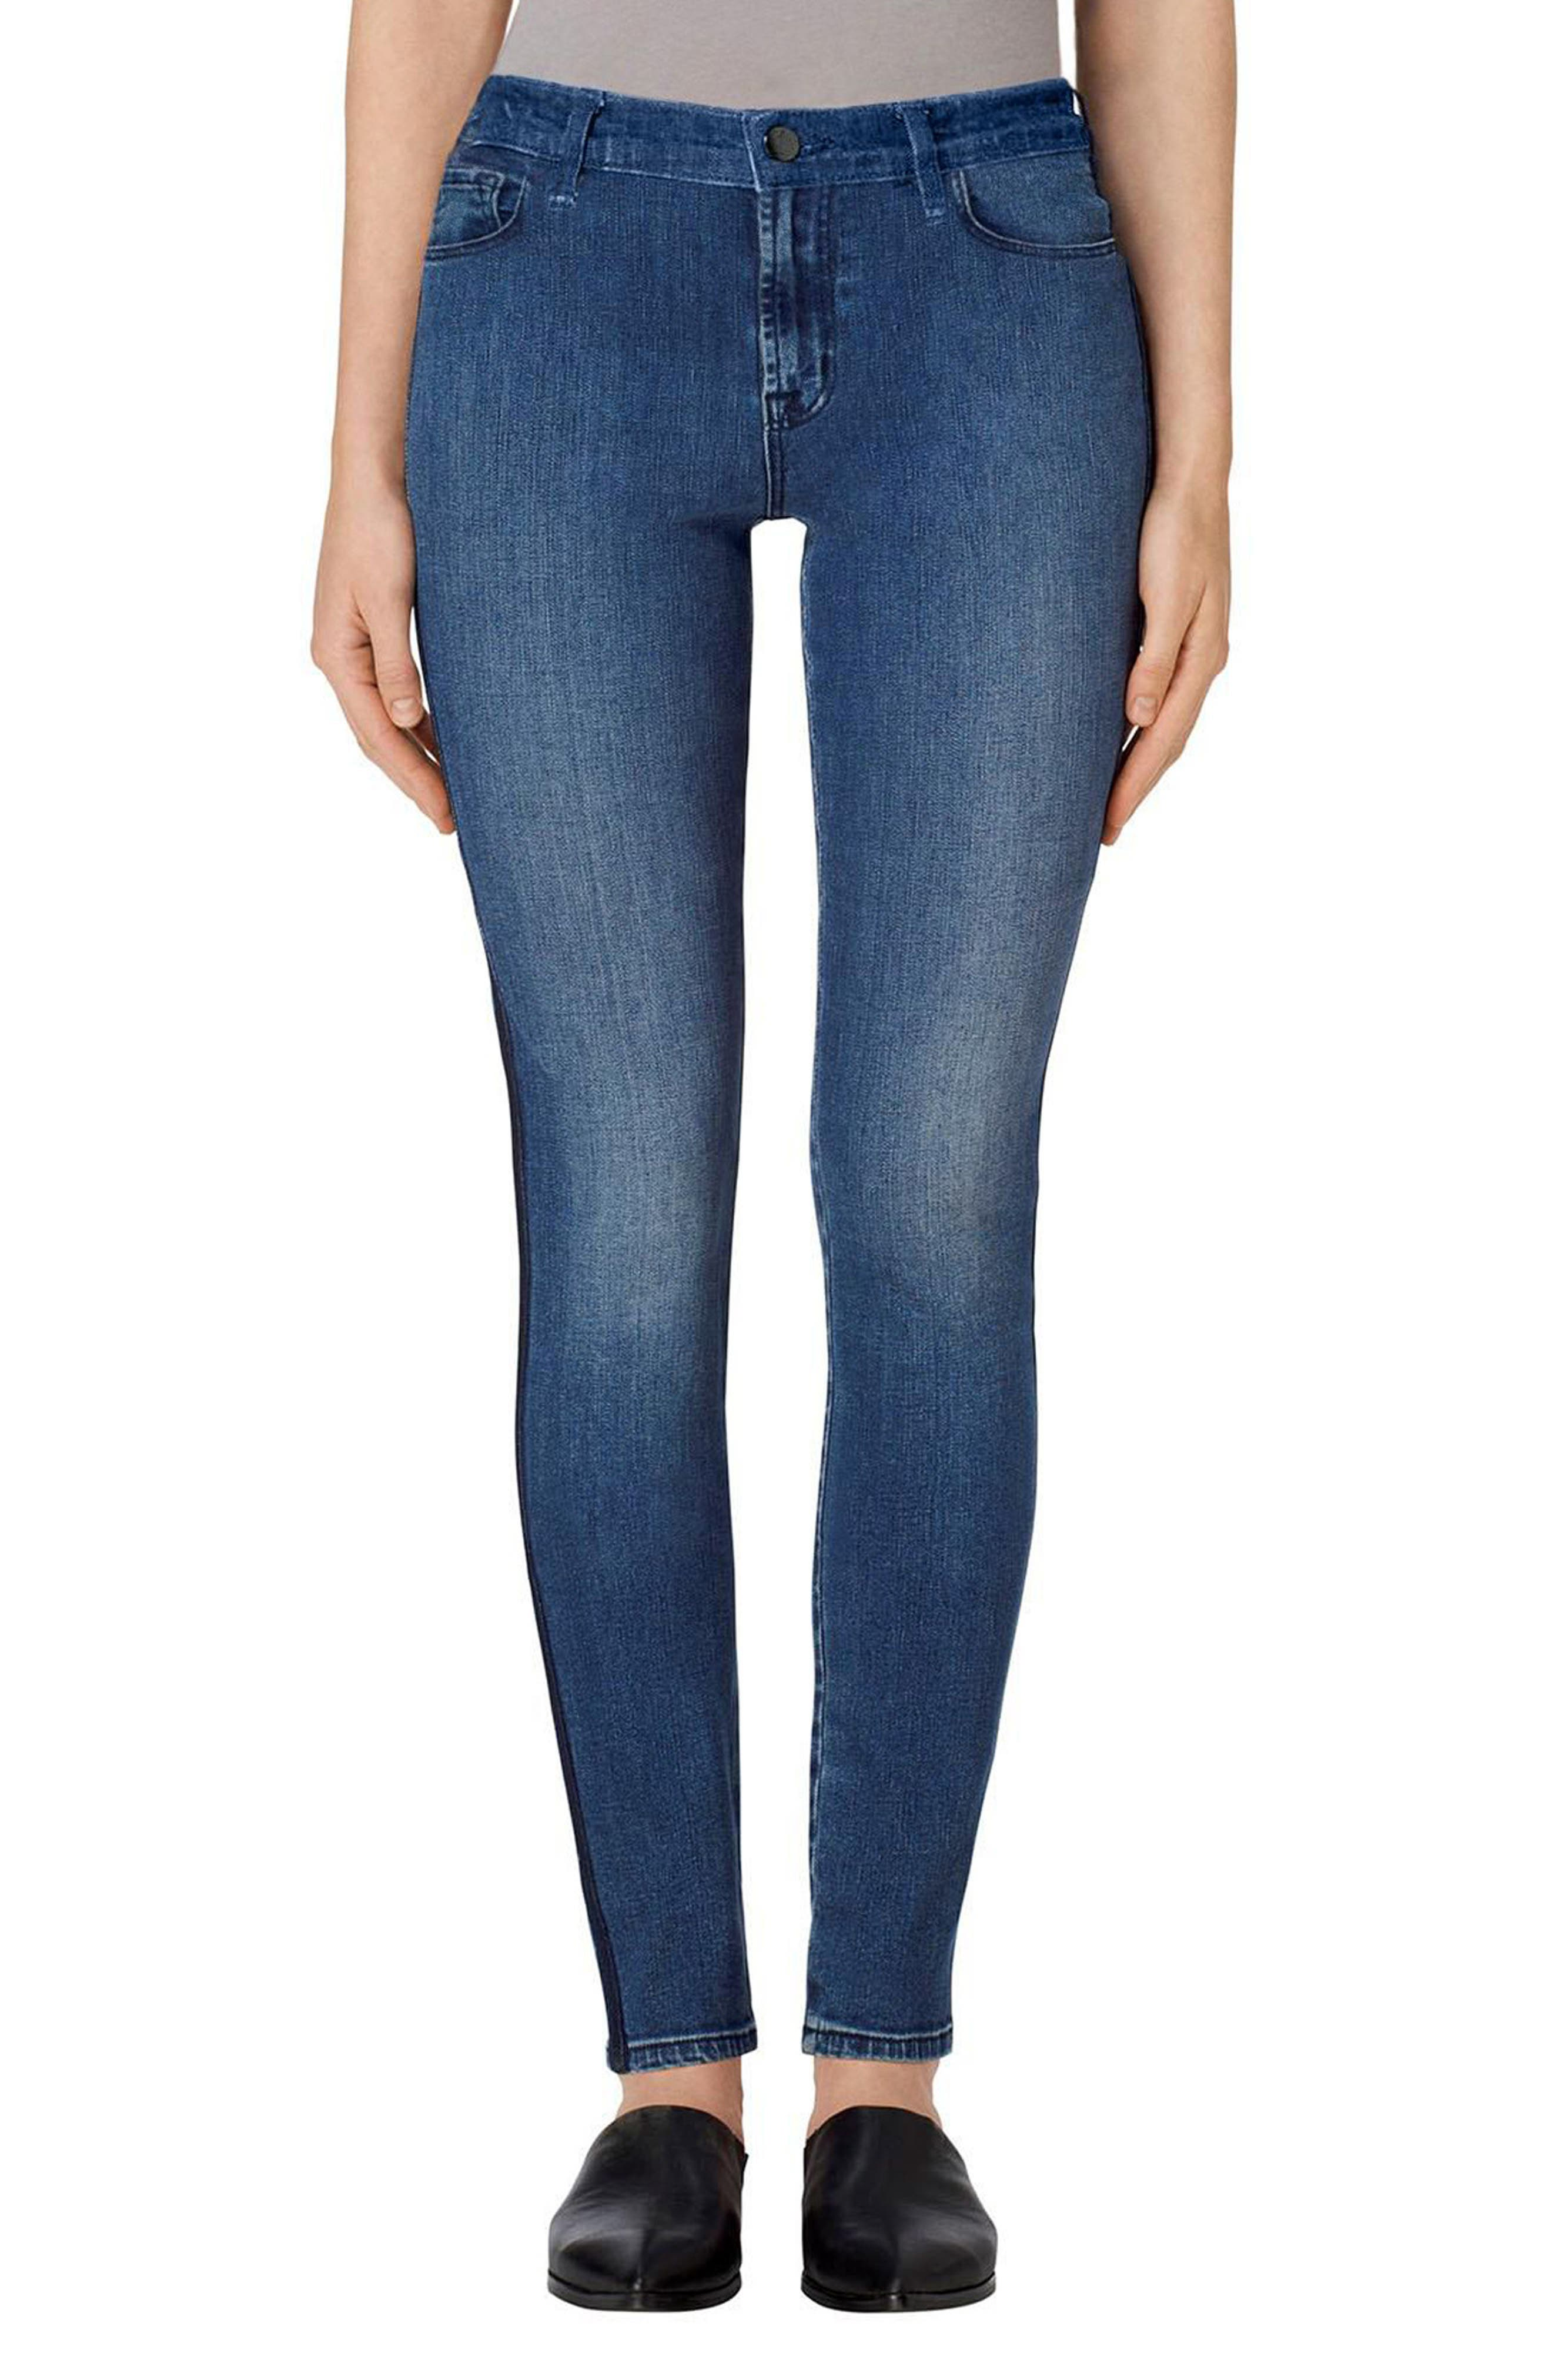 Alternate Image 1 Selected - J Brand Maria High Rise Skinny Jeans (Point Blank)